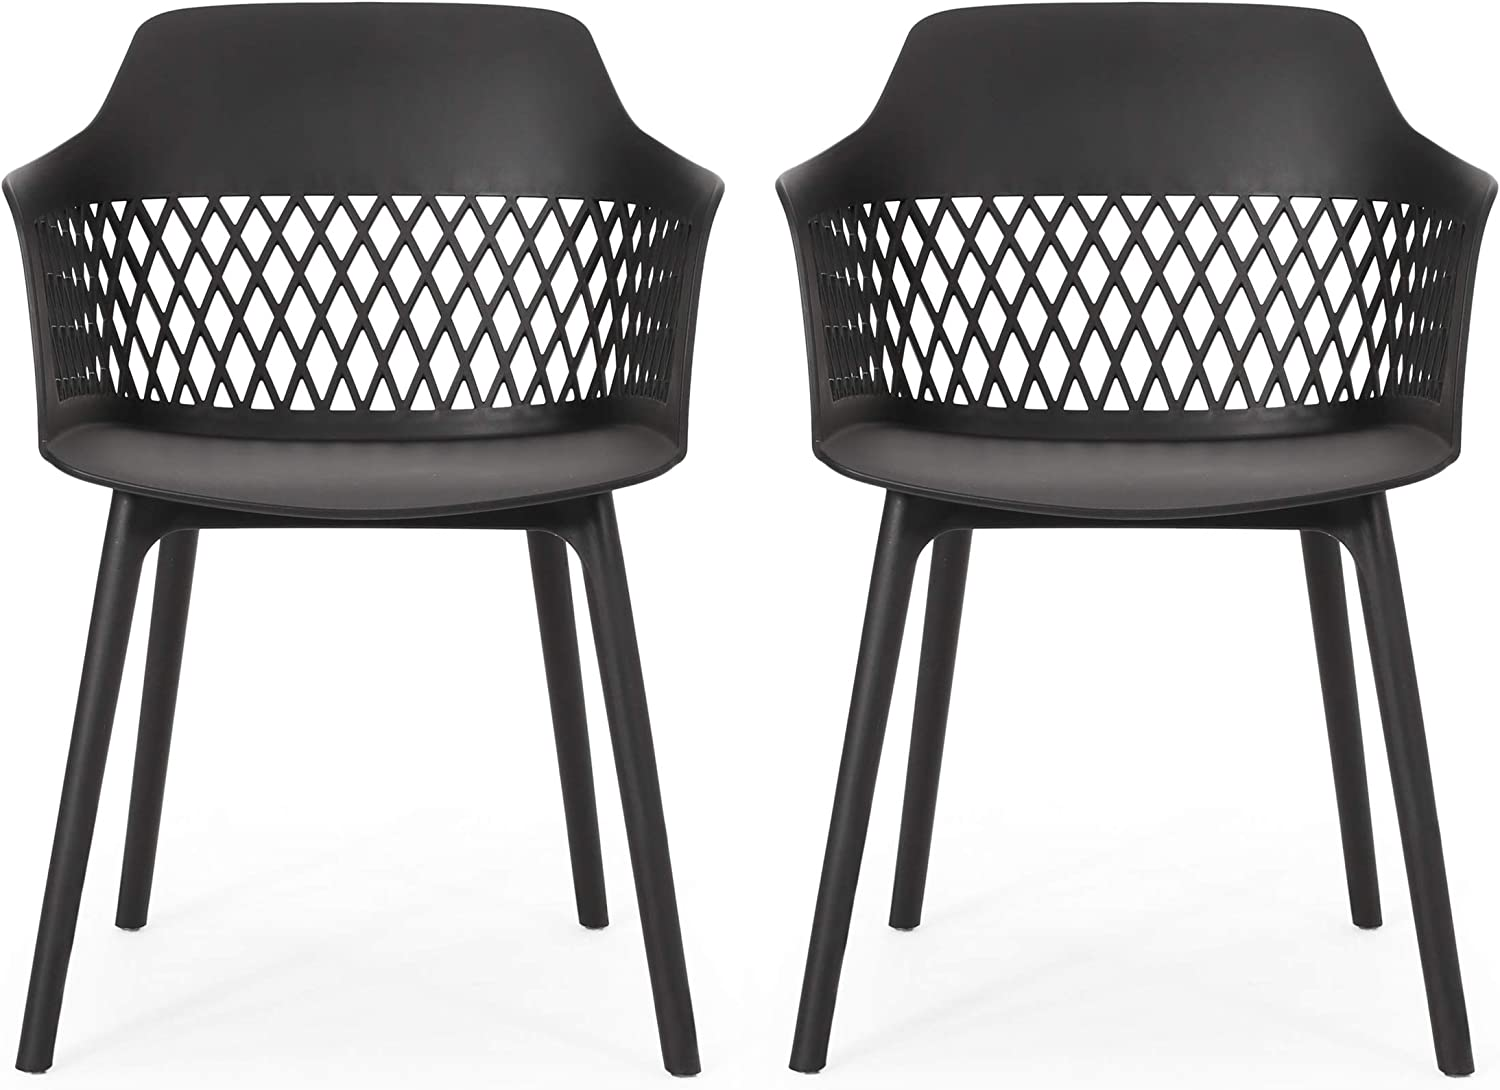 Christopher Knight Home 312178 Madeline Outdoor Dining Chair (Set of 2), Black : Garden & Outdoor